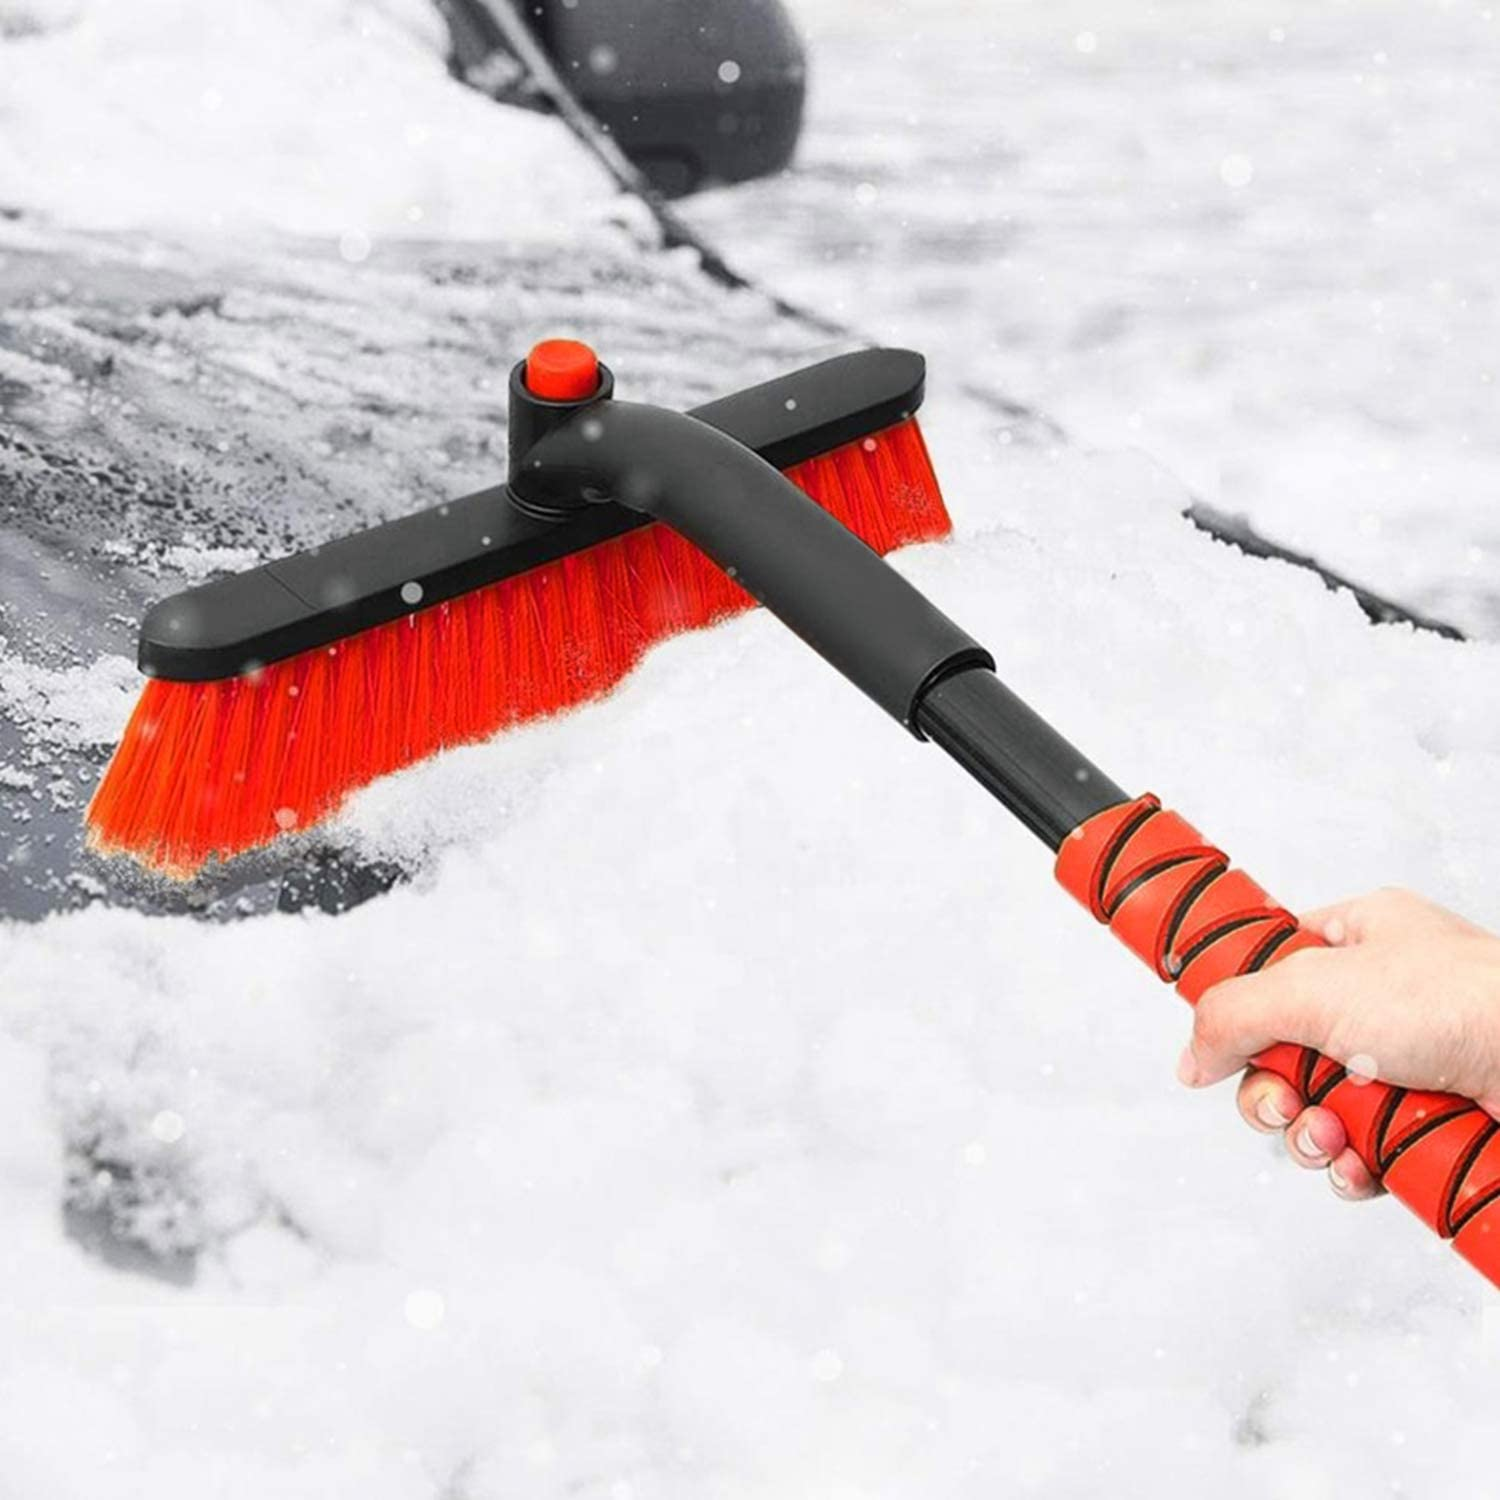 Rotating Head AD AIDO 26 Snow Brush with Squeegee /& Ice Scraper Auto Windshield Snowbrush no Scratch Broom Removal Tool Foam Grip Car Truck SUV Winter Remover